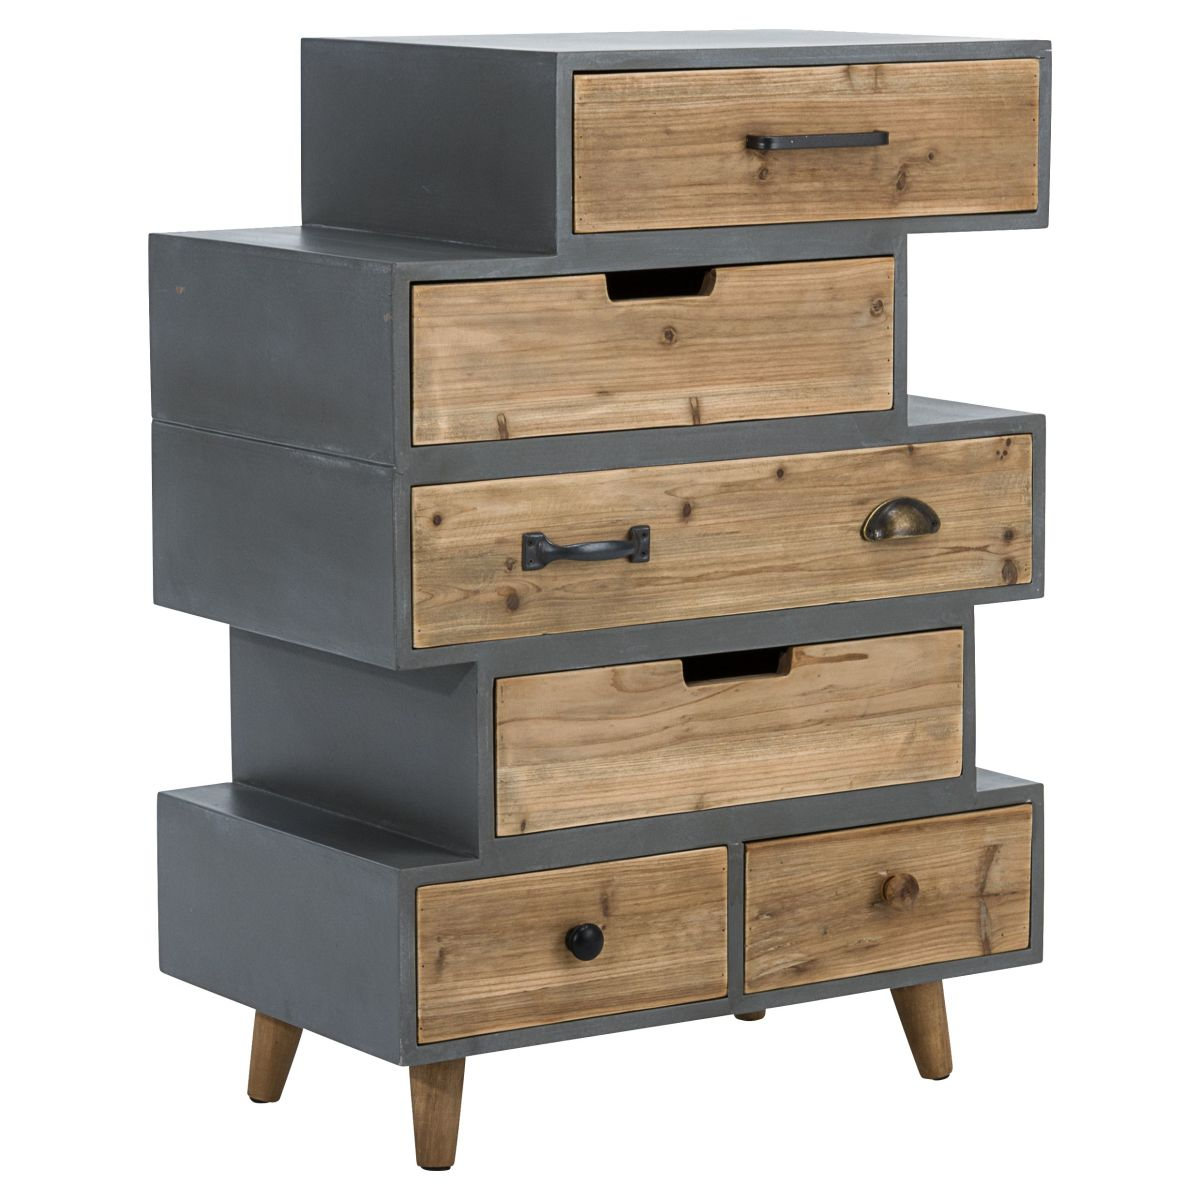 schubladenschrank kommode in beton optik versandkostenfreie m bel online. Black Bedroom Furniture Sets. Home Design Ideas